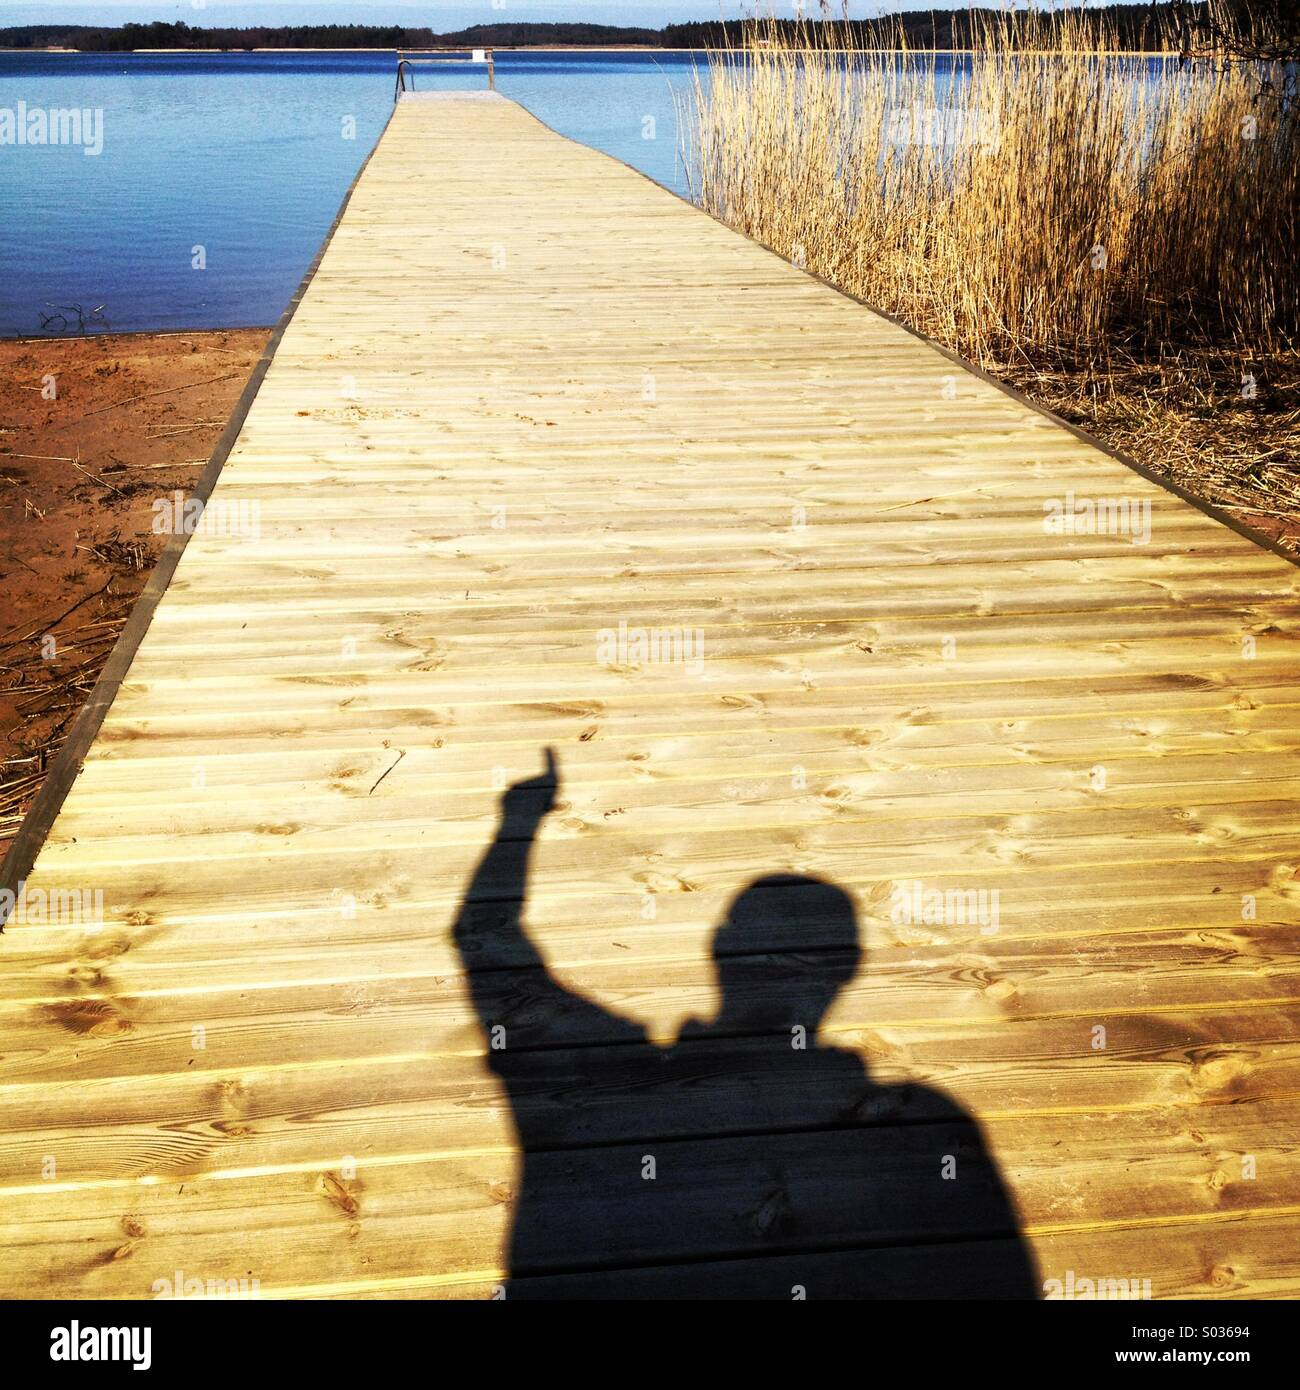 A man in shadow pointing along a long pier on a public beach in Nordic Scandinavia - Stock Image